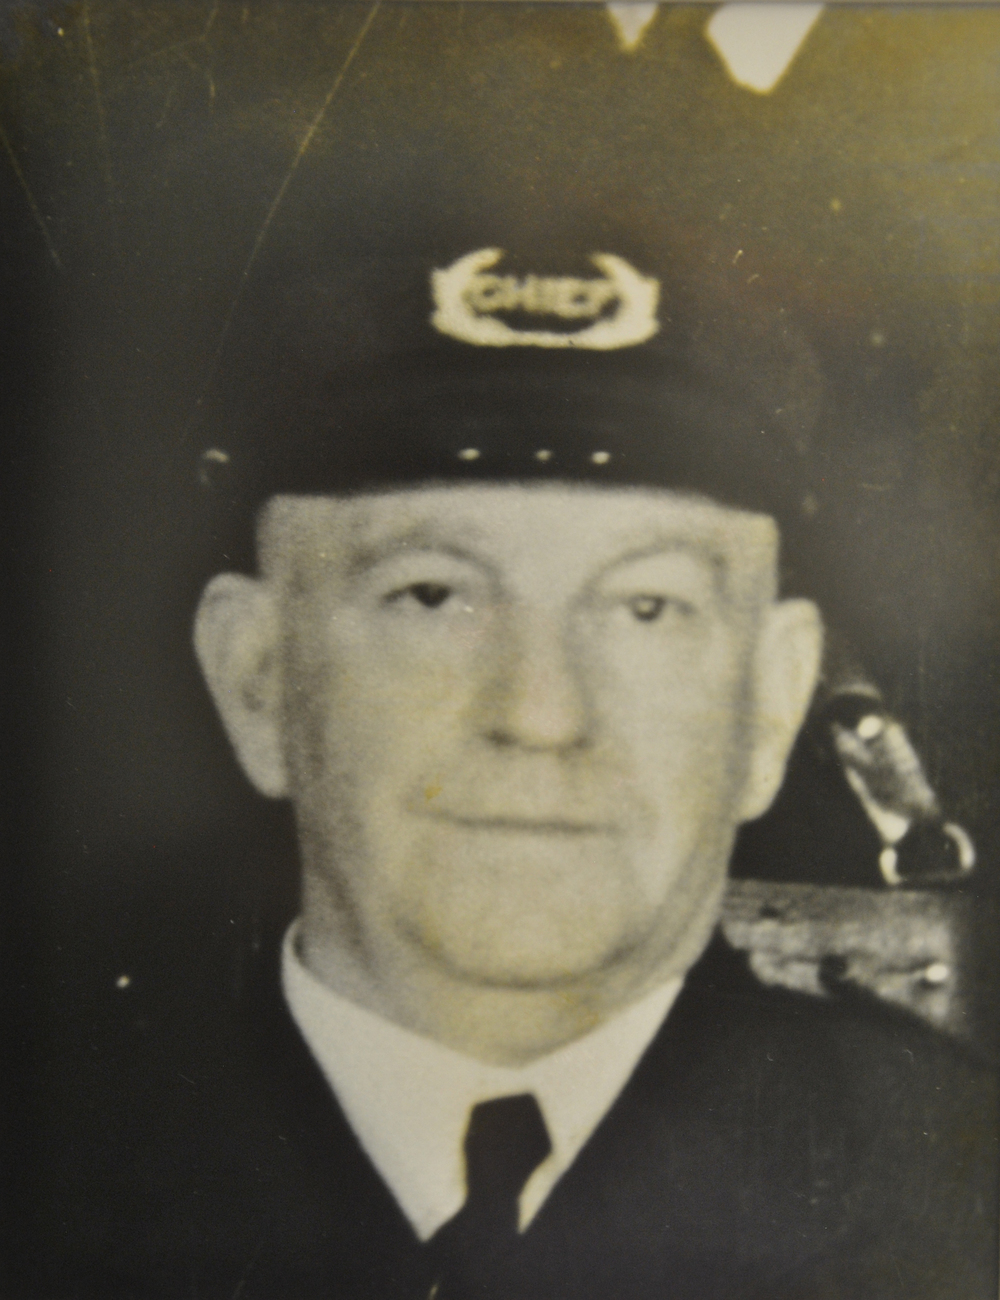 Chief Thompson, 1944-1956